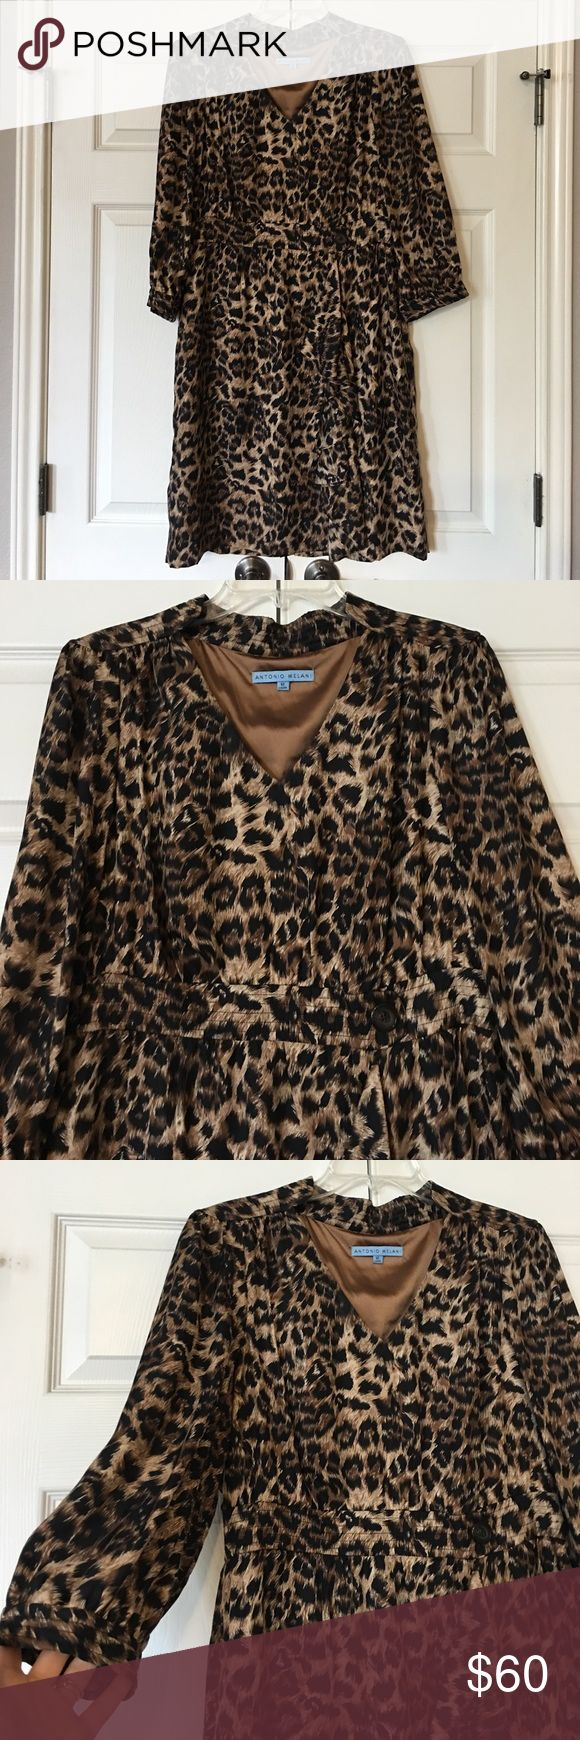 Antonio Melani - Leopard Print Dress Beautiful leopard print dress! Excellent Condition! Worn once for dinner (couple hours) then never again! Comes from a smoke free home! No stains, no rips, no marks! Price is definitely negotiable and I'm always open to all offers. Measures 38.5 inches from shoulder to hem! ANTONIO MELANI Dresses